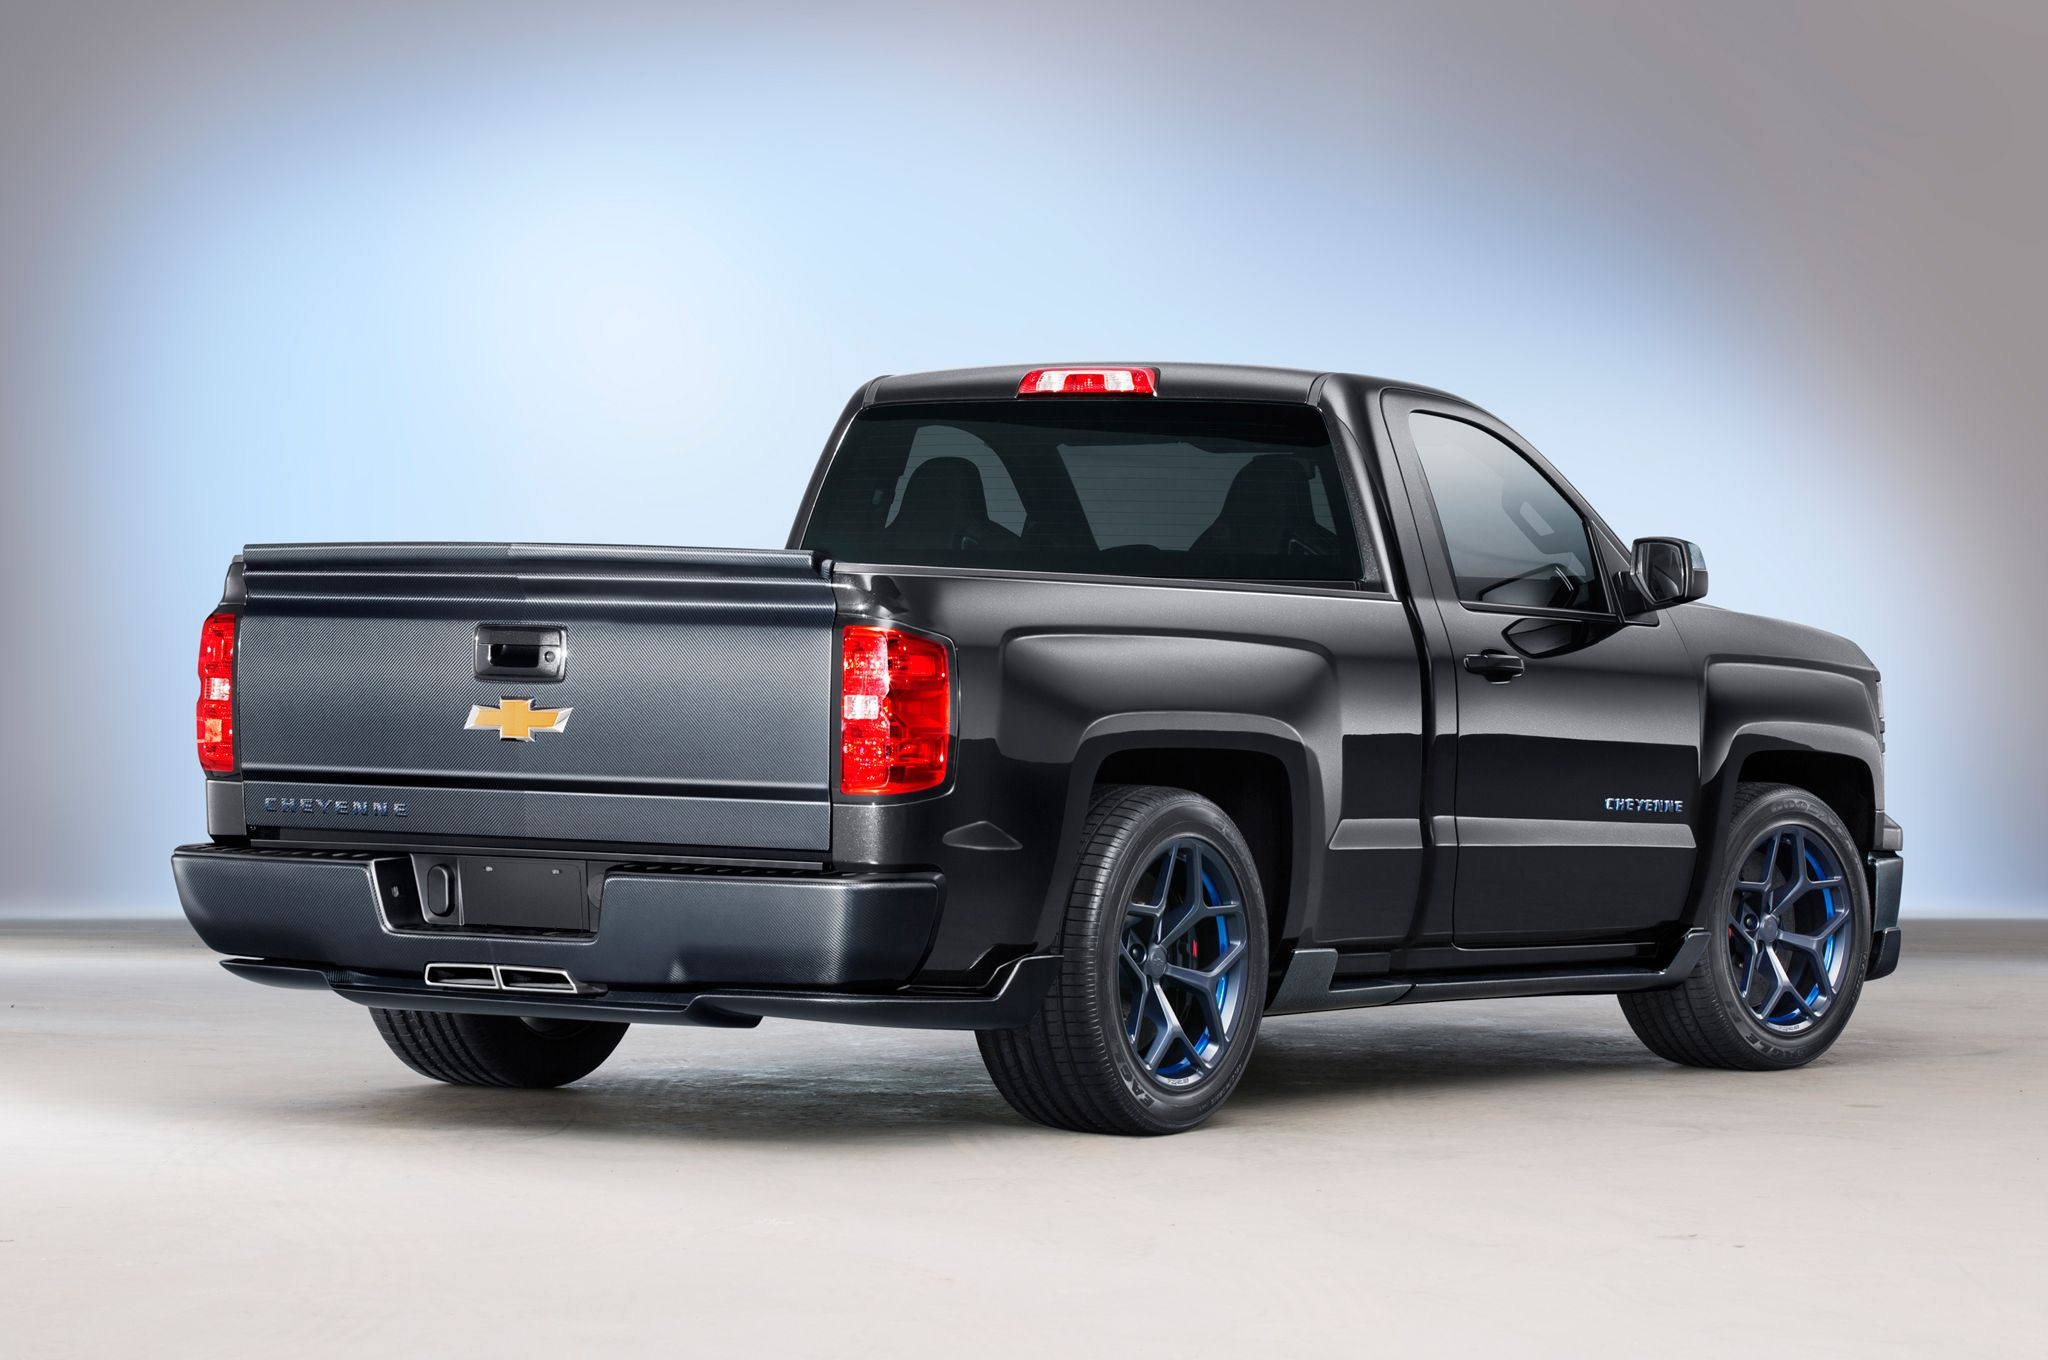 This regular cab 2014 chevrolet silverado cheyenne concept truck has an ecotec and camaro parts it has been revealed at the sema 2013 show